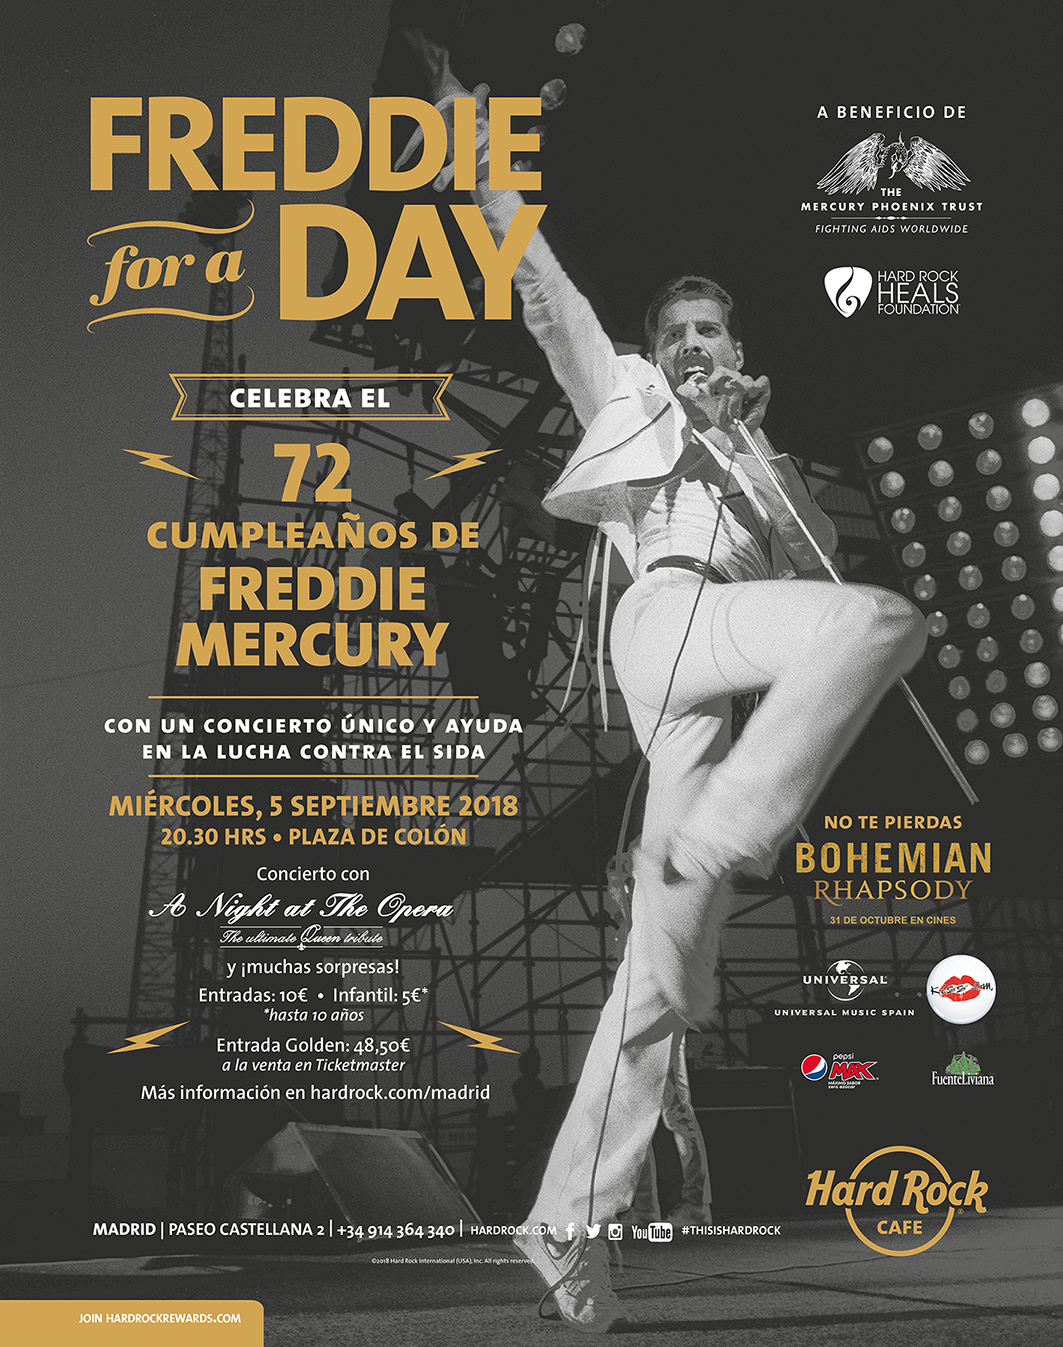 Freddie for a day llega a Madrid